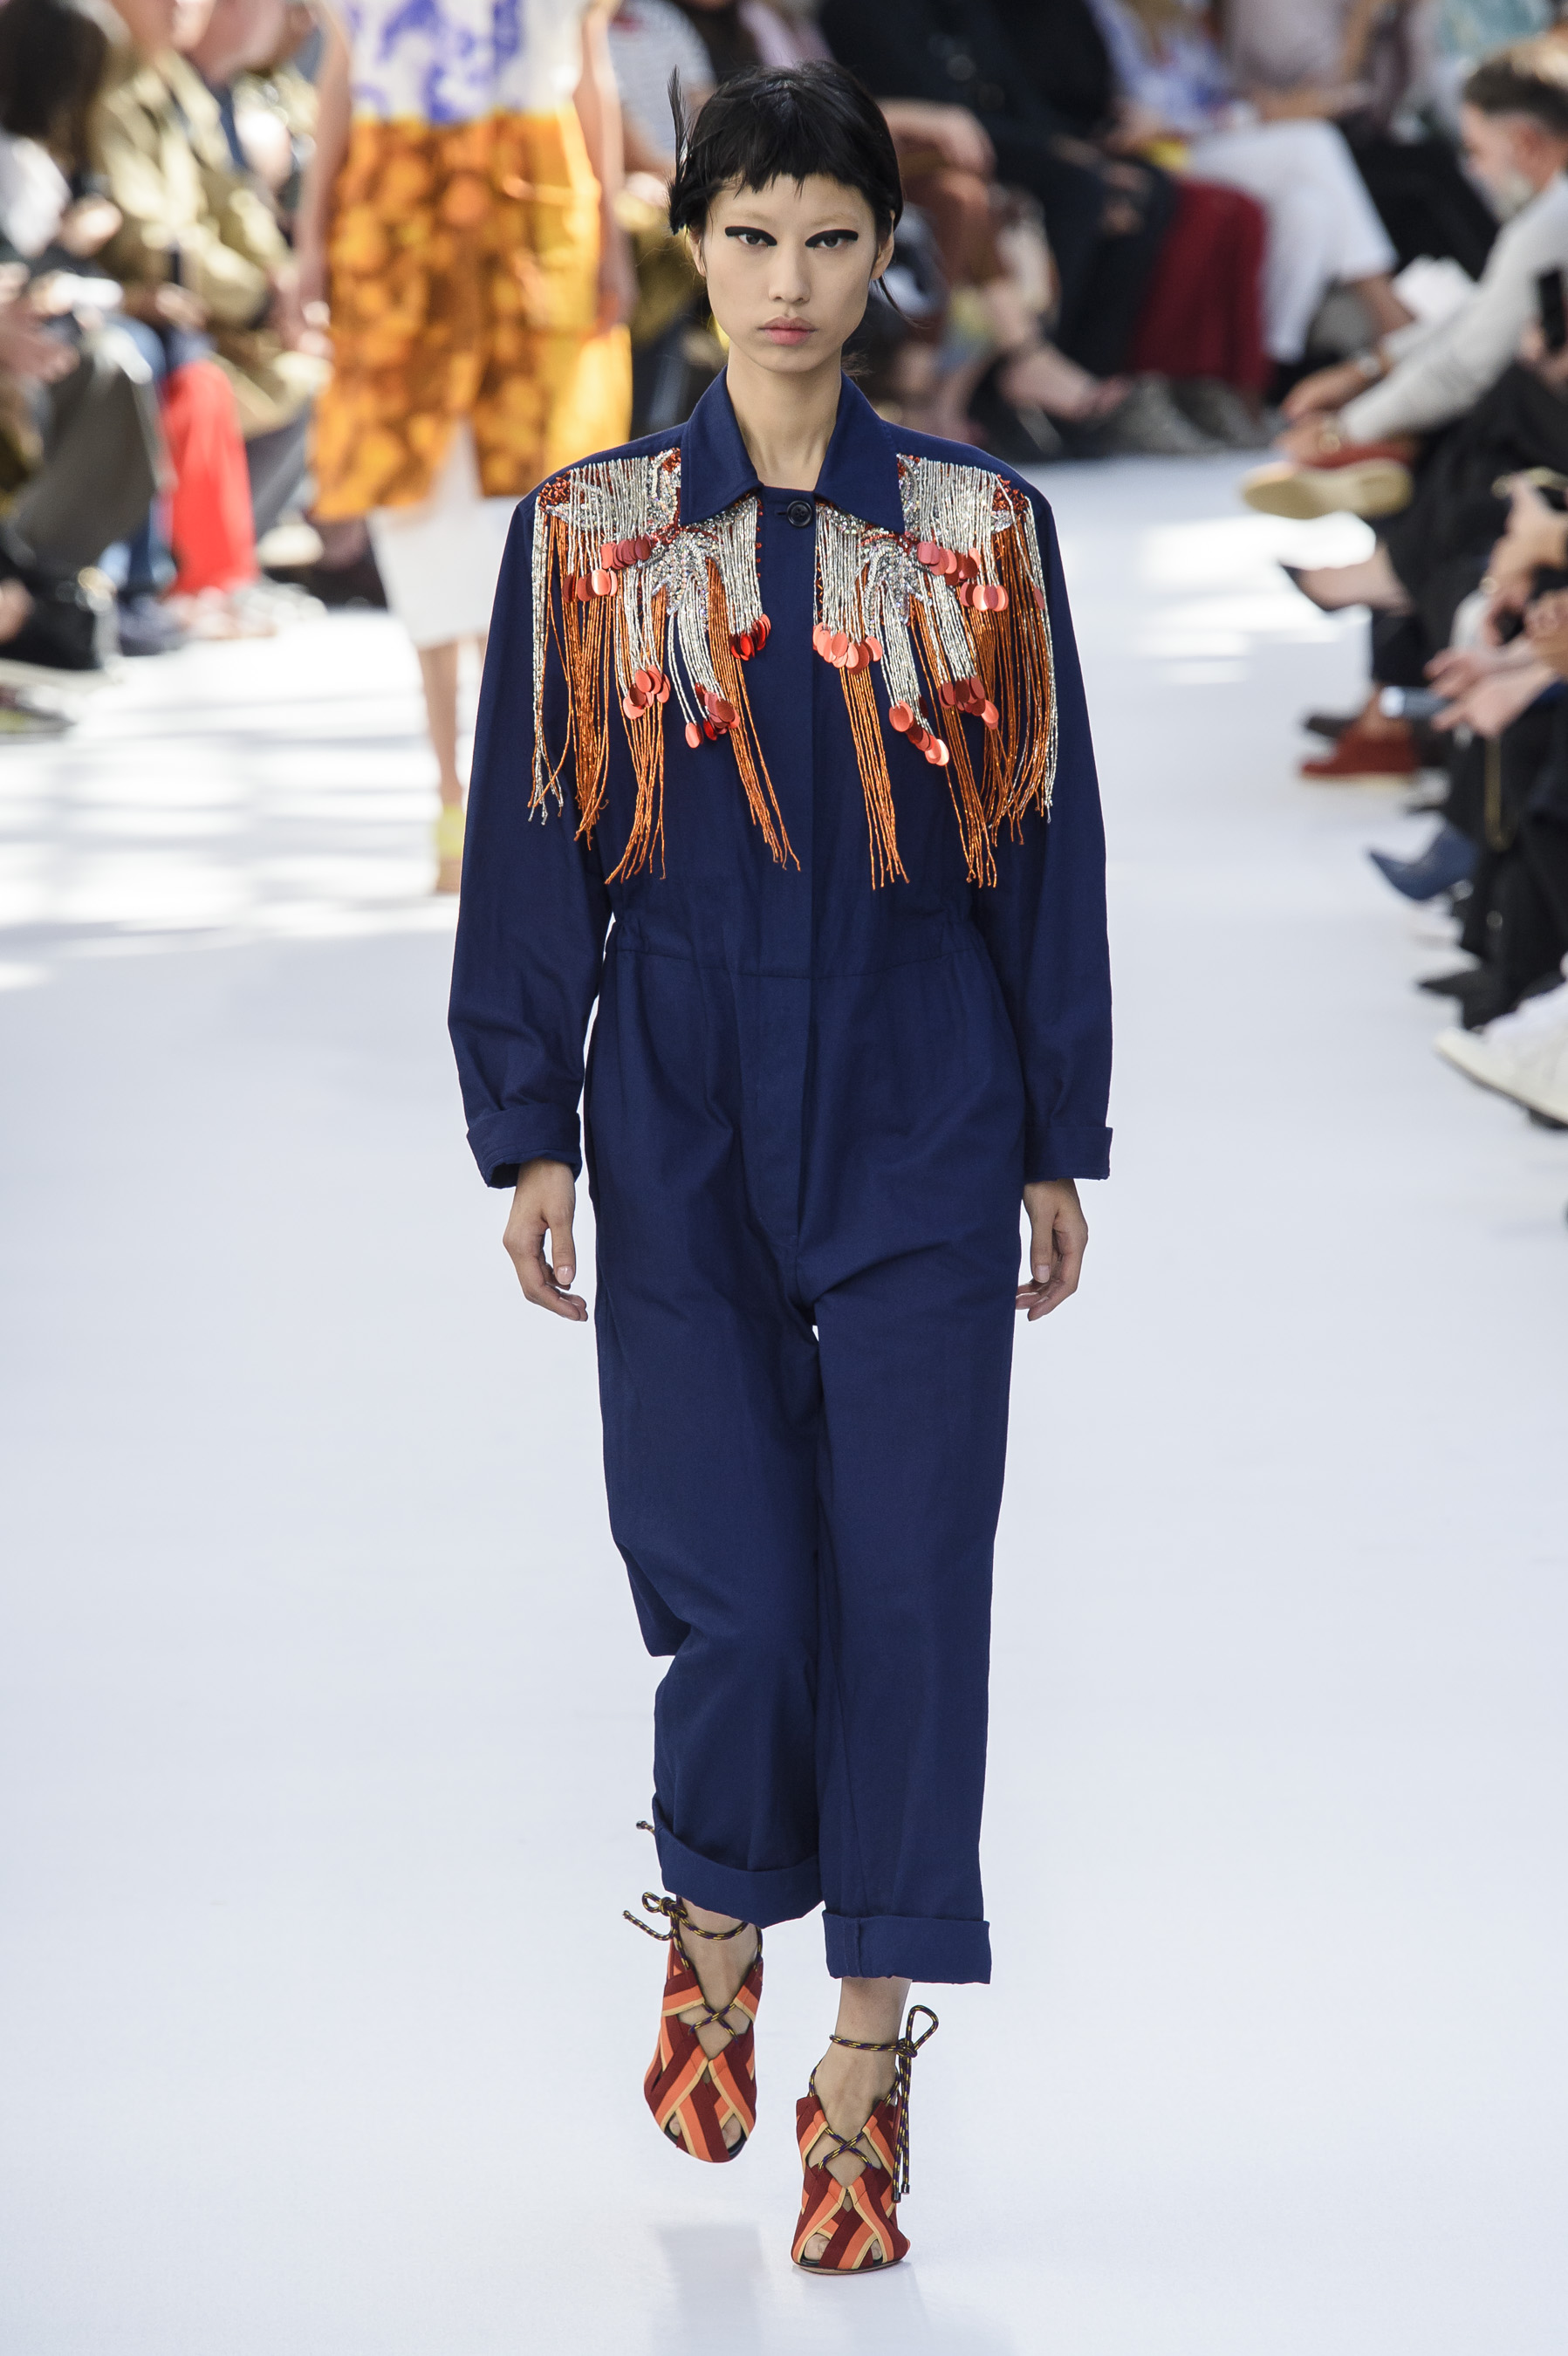 Dries Van Noten Spring 2019 Fashion Show